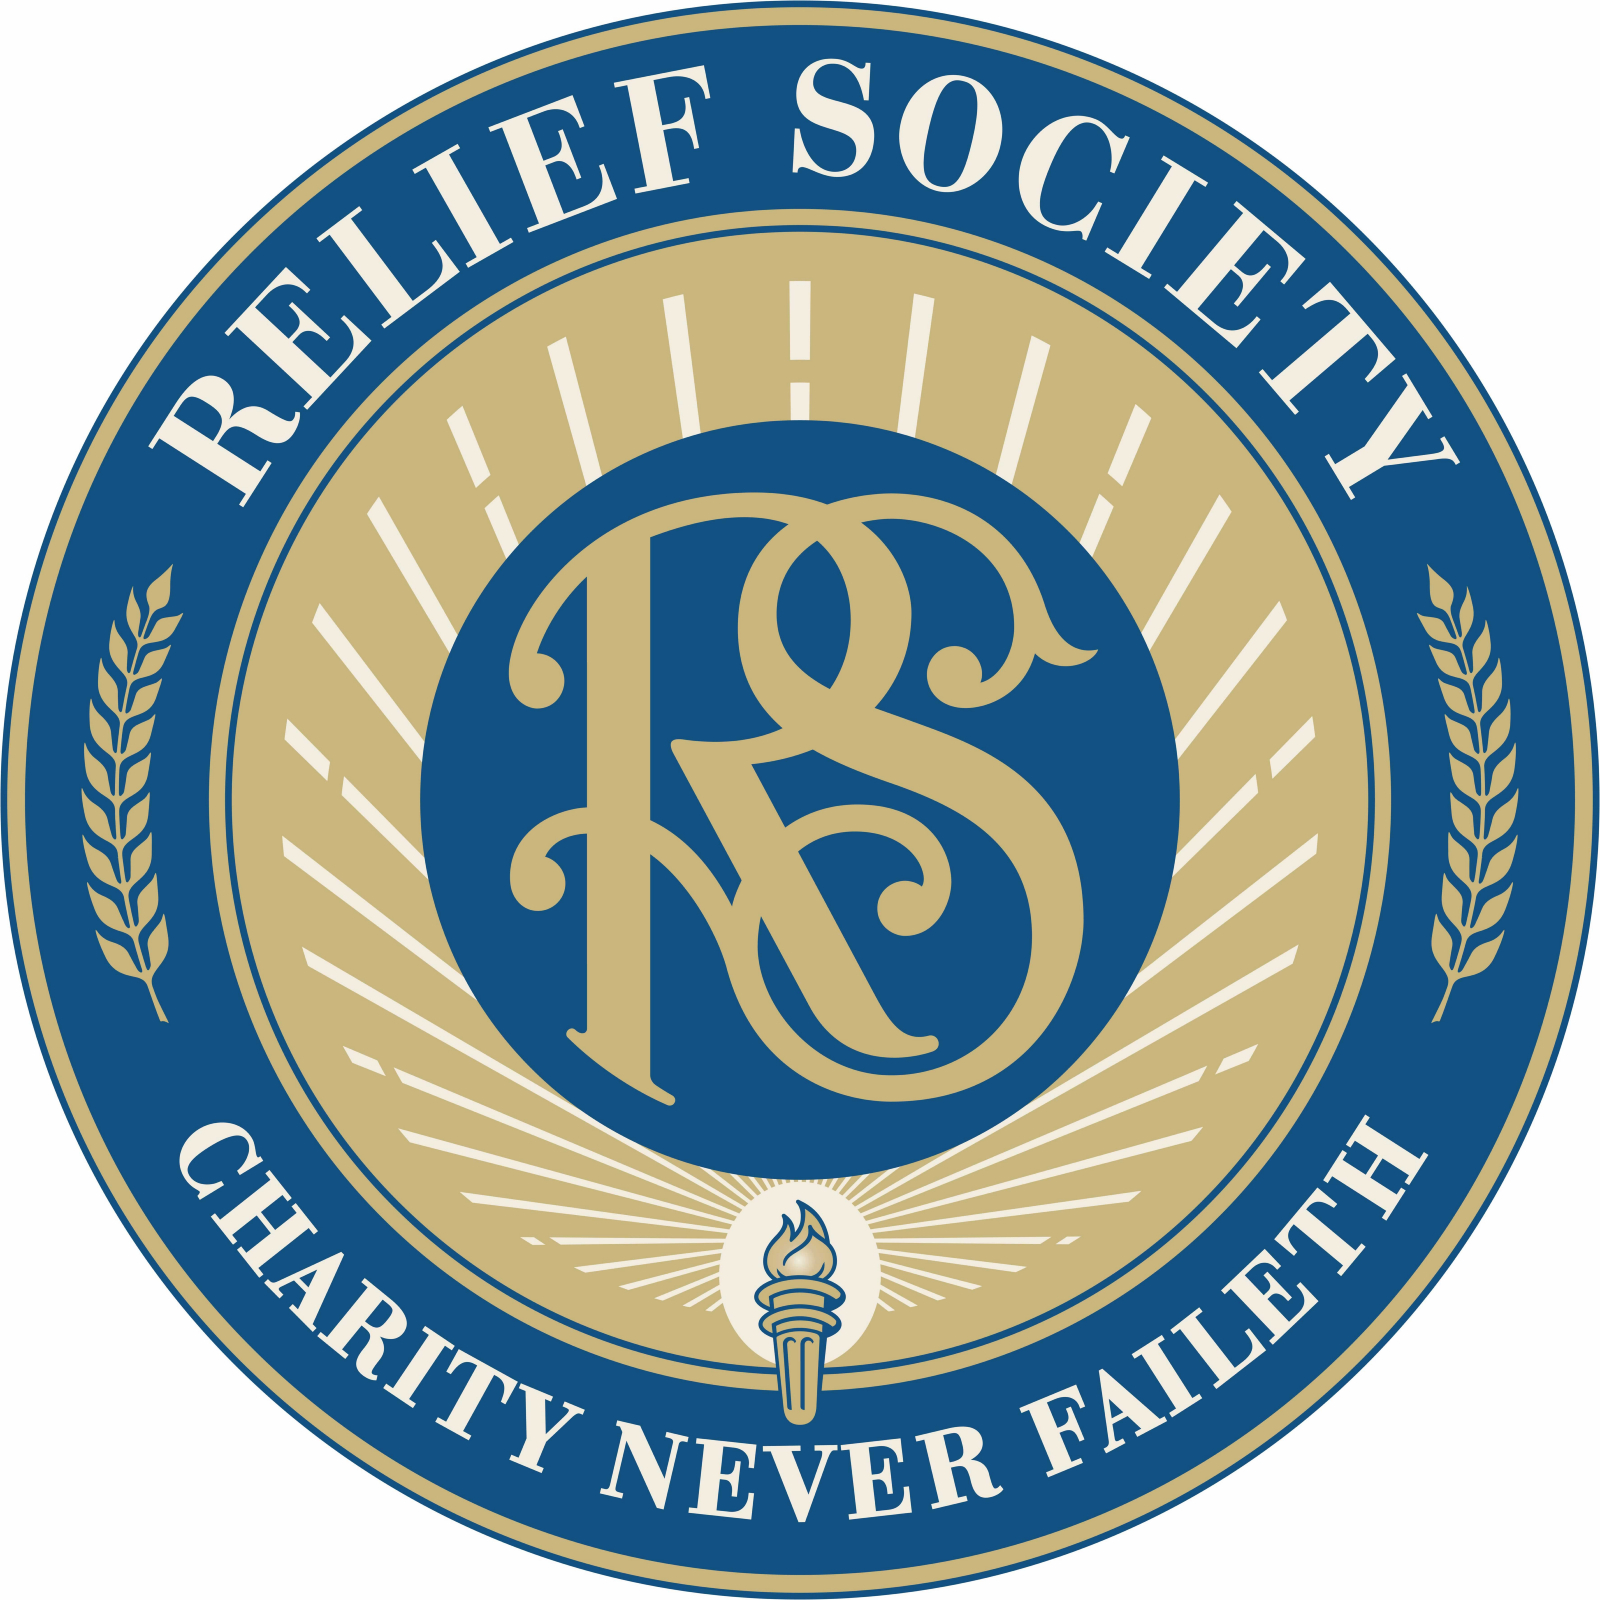 relief society seal rh lds org free lds relief society clip art lds relief society seal clip art